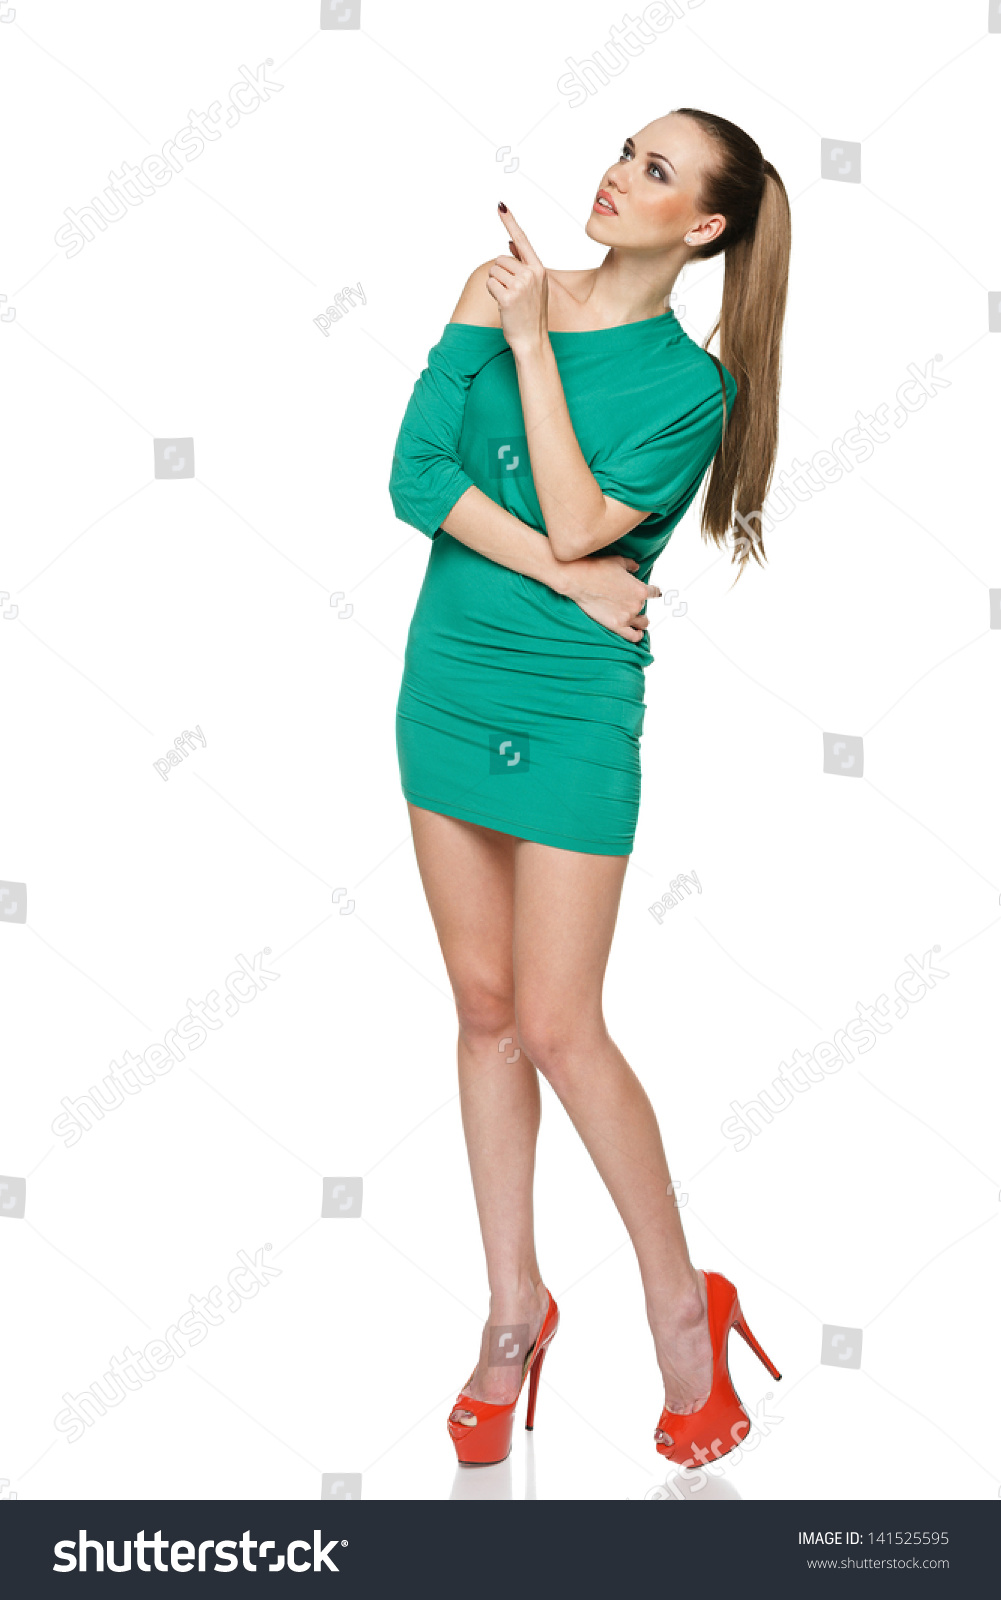 Summer Woman Full Length Wearing Green Stock Photo 141525595 ...